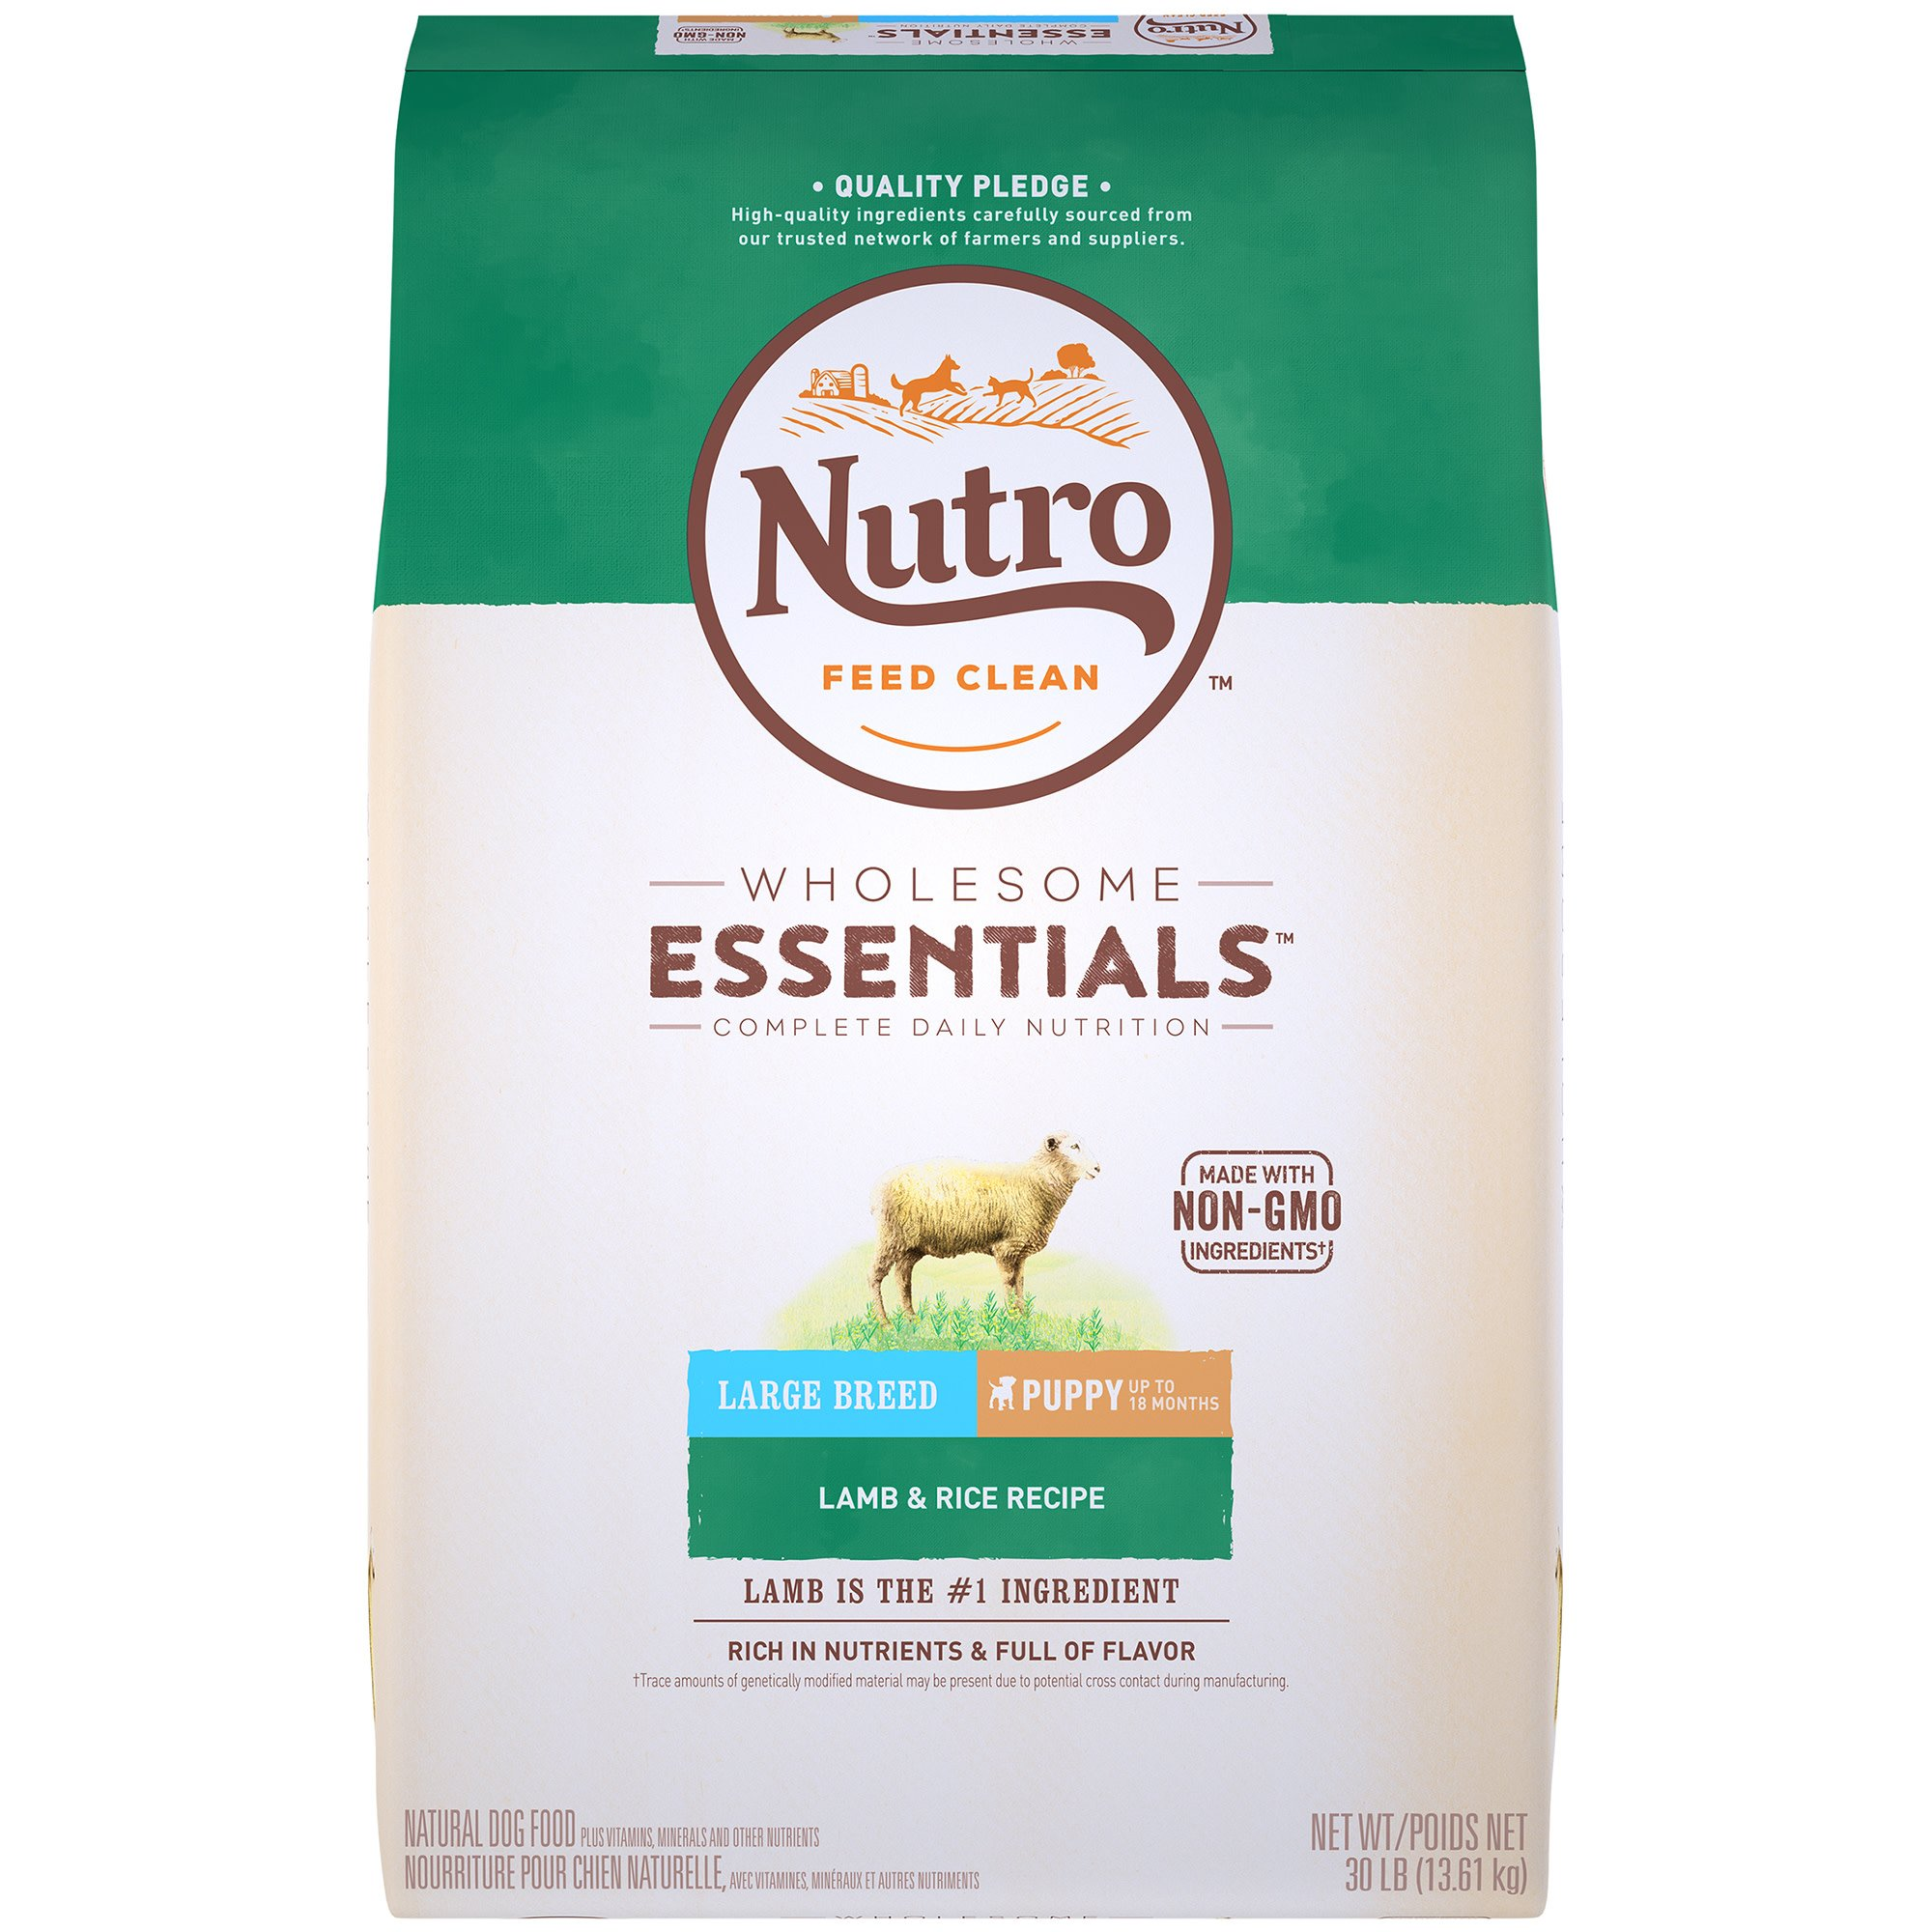 Nutro Wholesome Essentials Pasture-Fed Lamb & Rice Recipe Large Breed Puppy Dry Dog Food, 30 lbs.